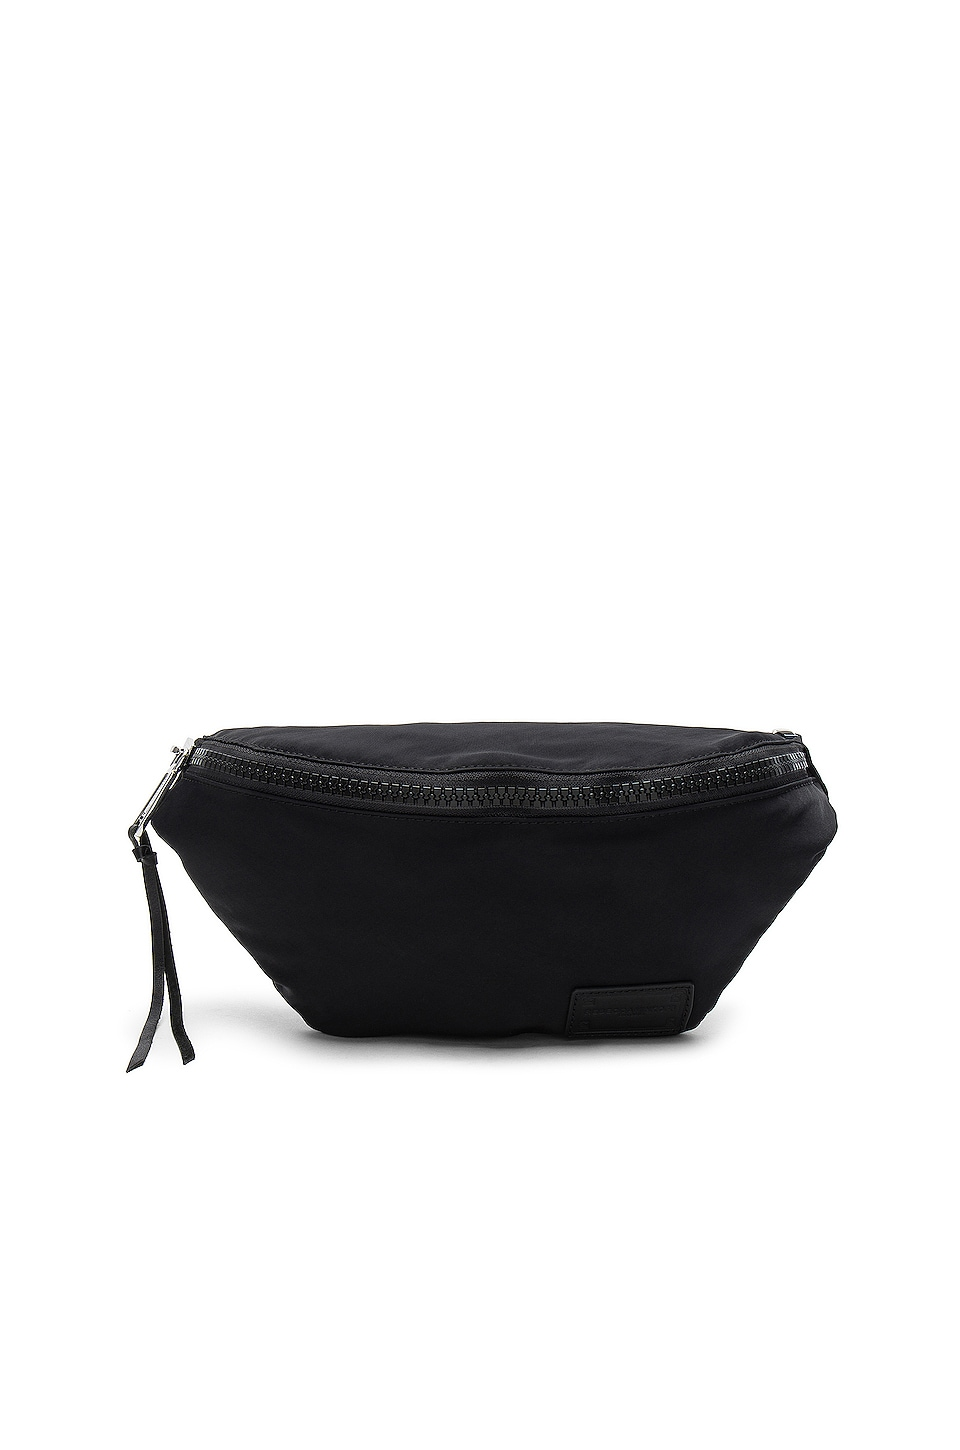 Rebecca Minkoff Nylon Belt Bag in Black